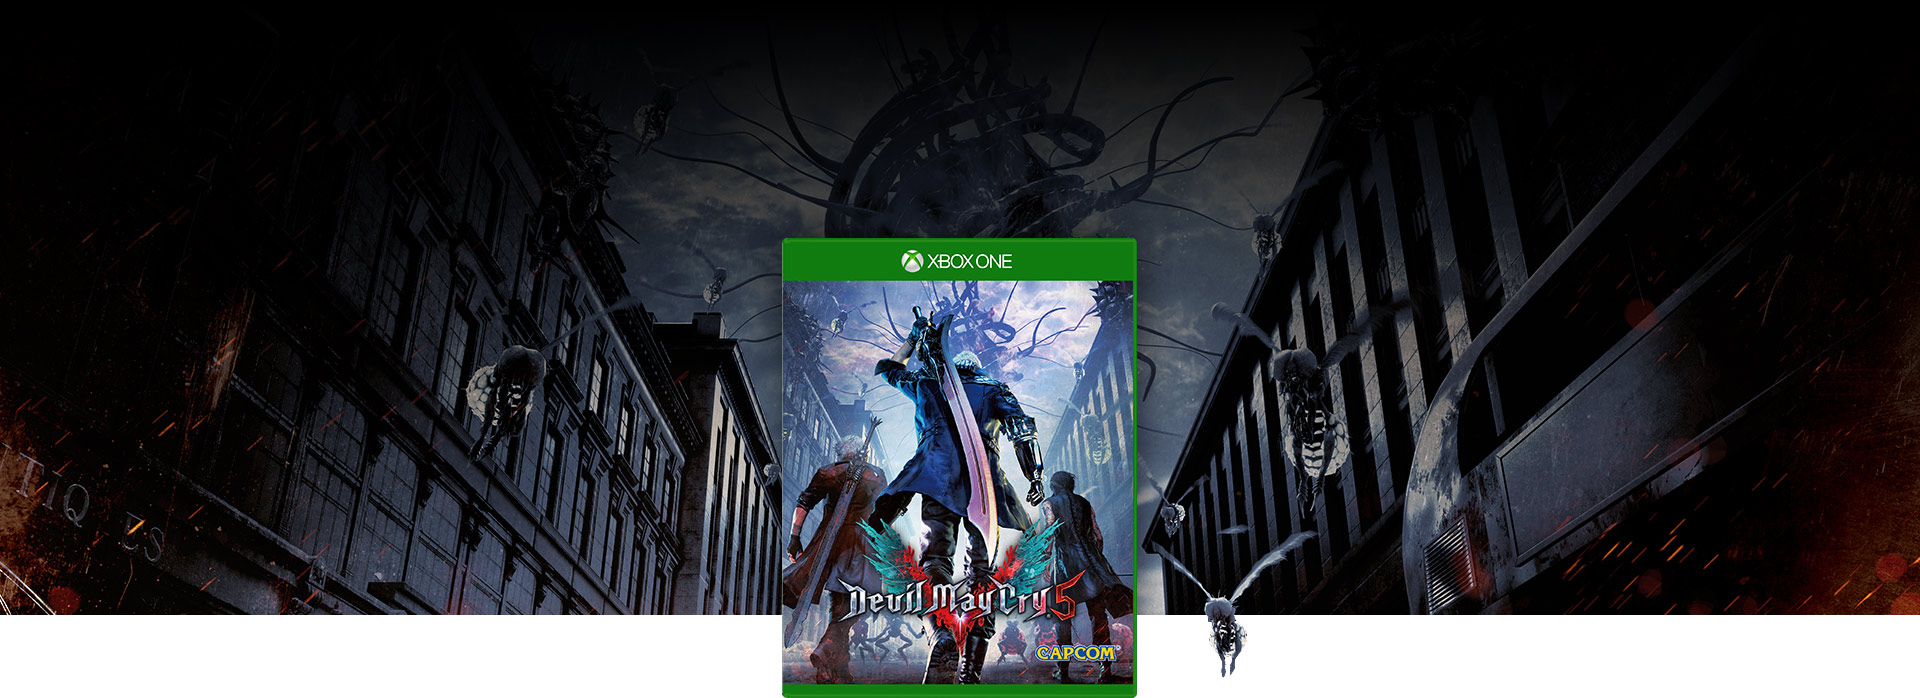 Devil May Cry 5-coverbilde, insekter flyr rundt i en forlatt by